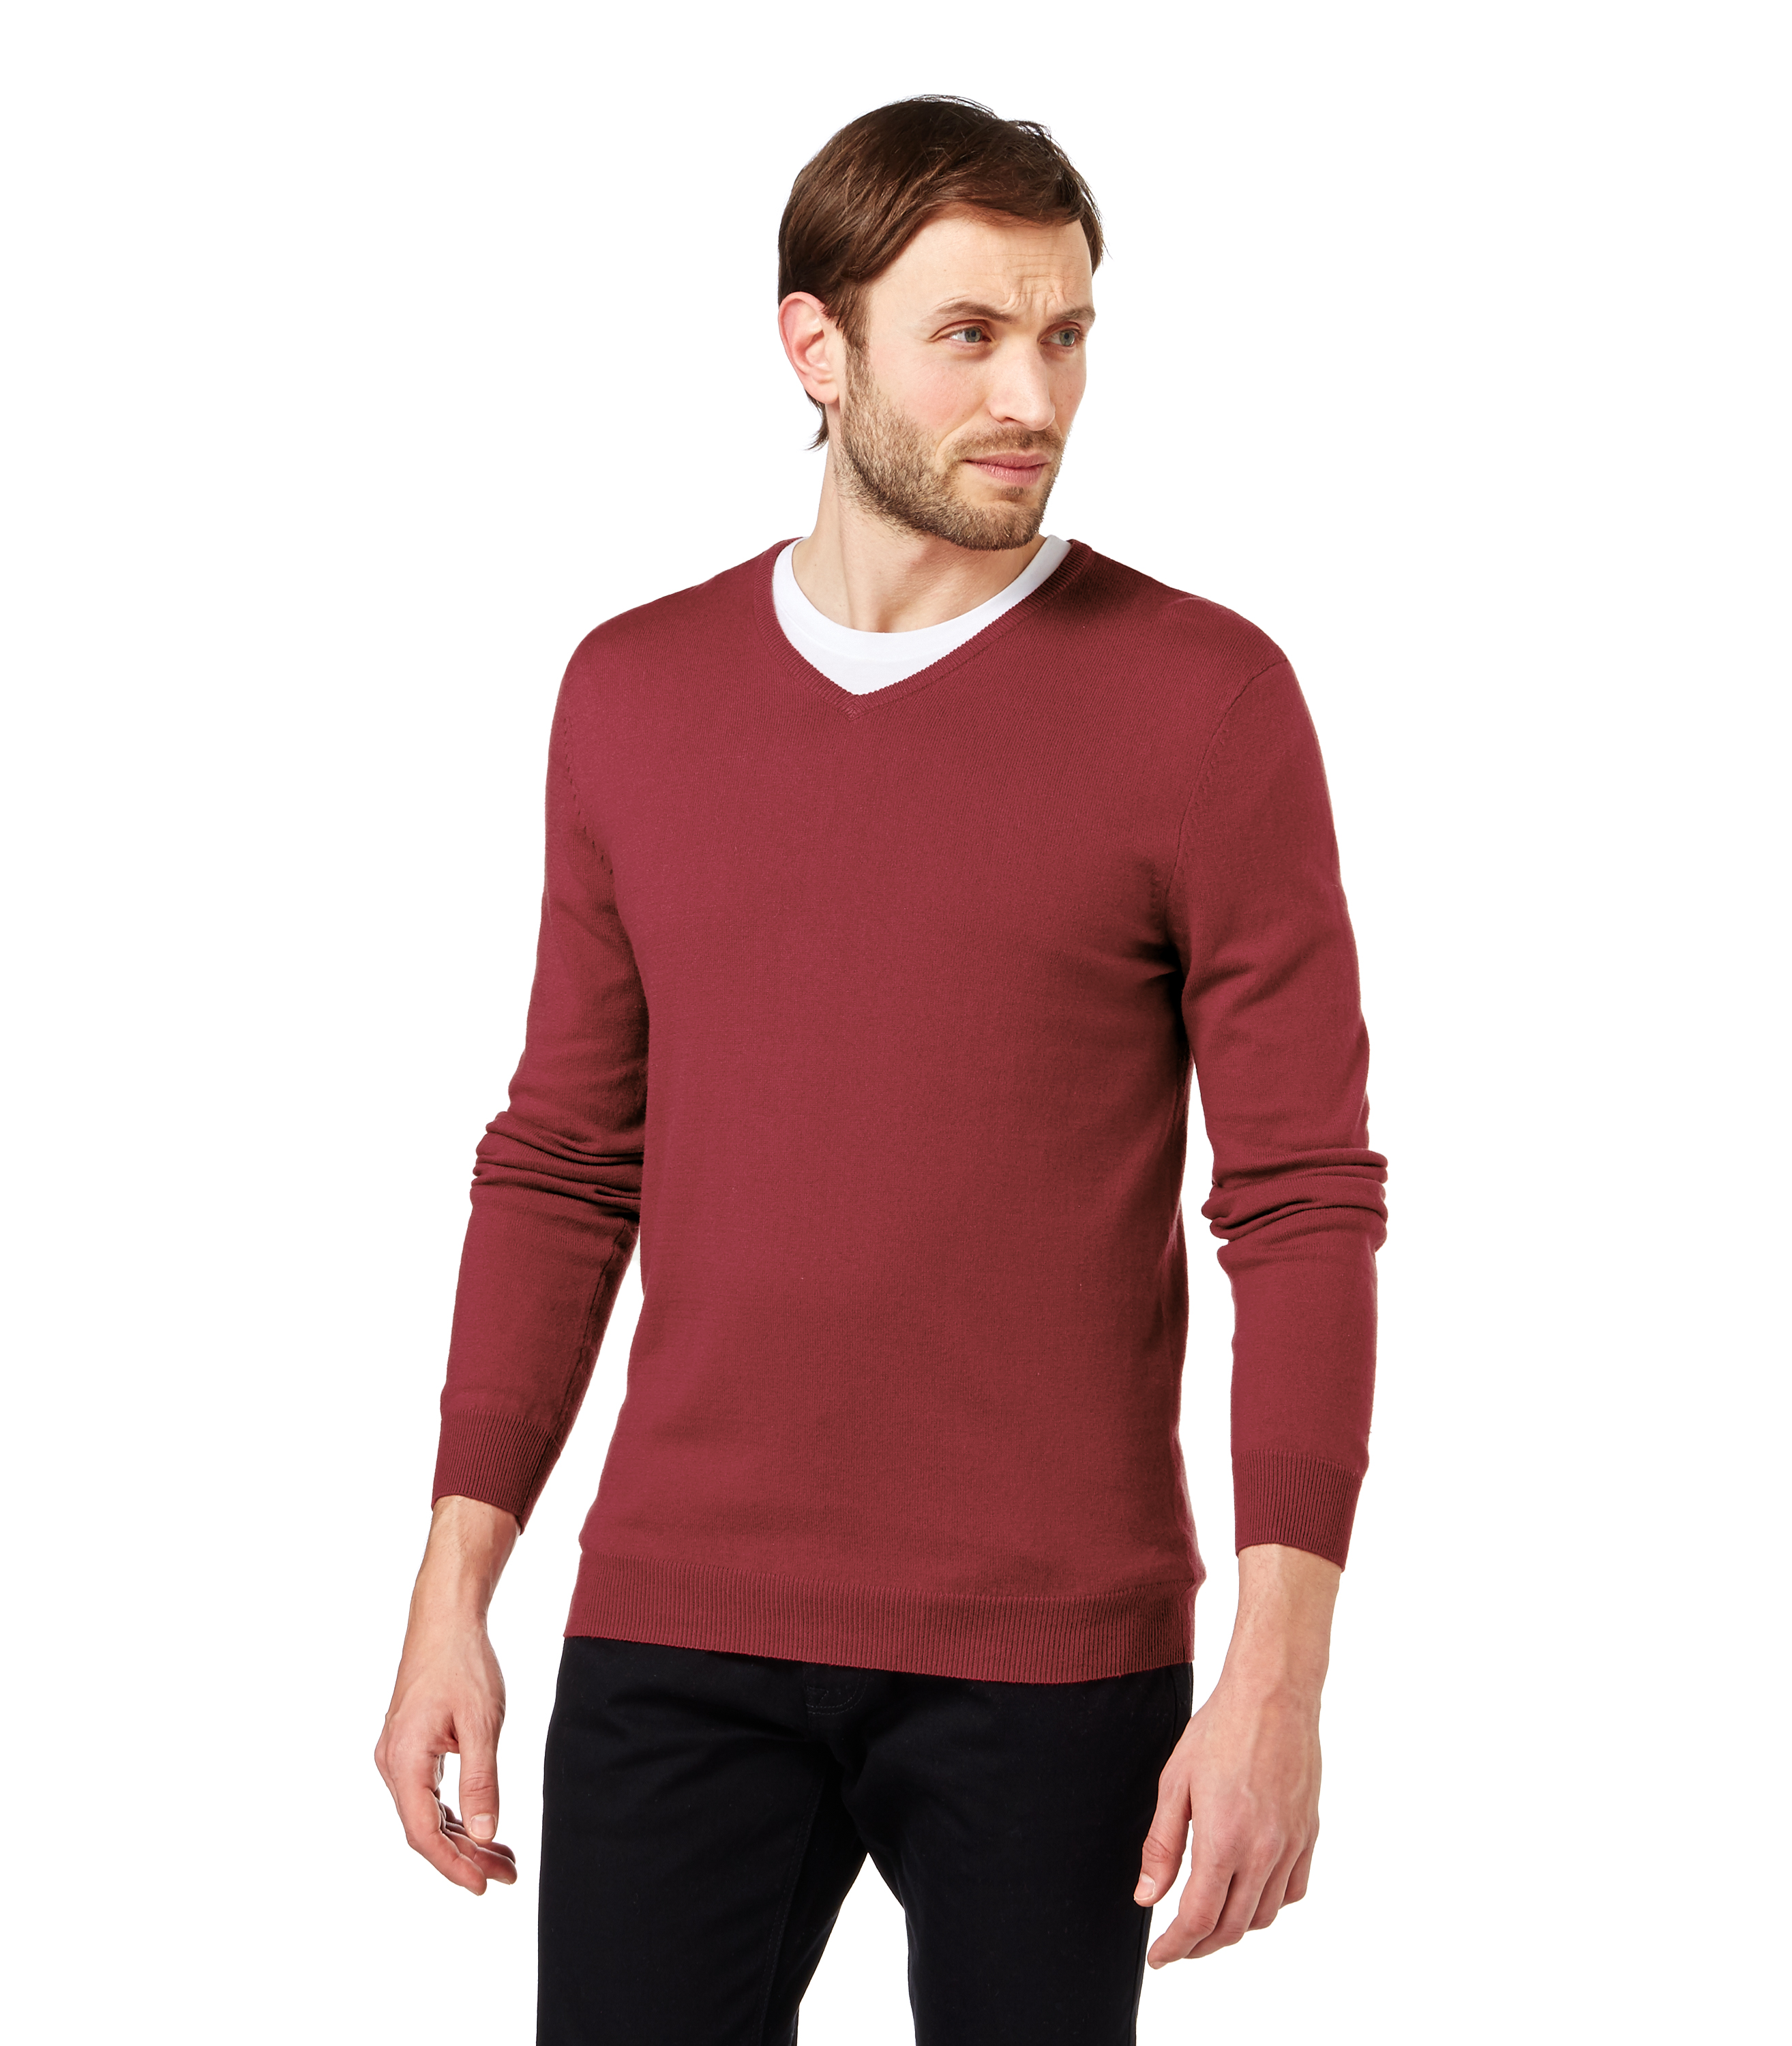 woolovers herren strickpullover v ausschnitt langarm seiden mix pullover pulli ebay. Black Bedroom Furniture Sets. Home Design Ideas